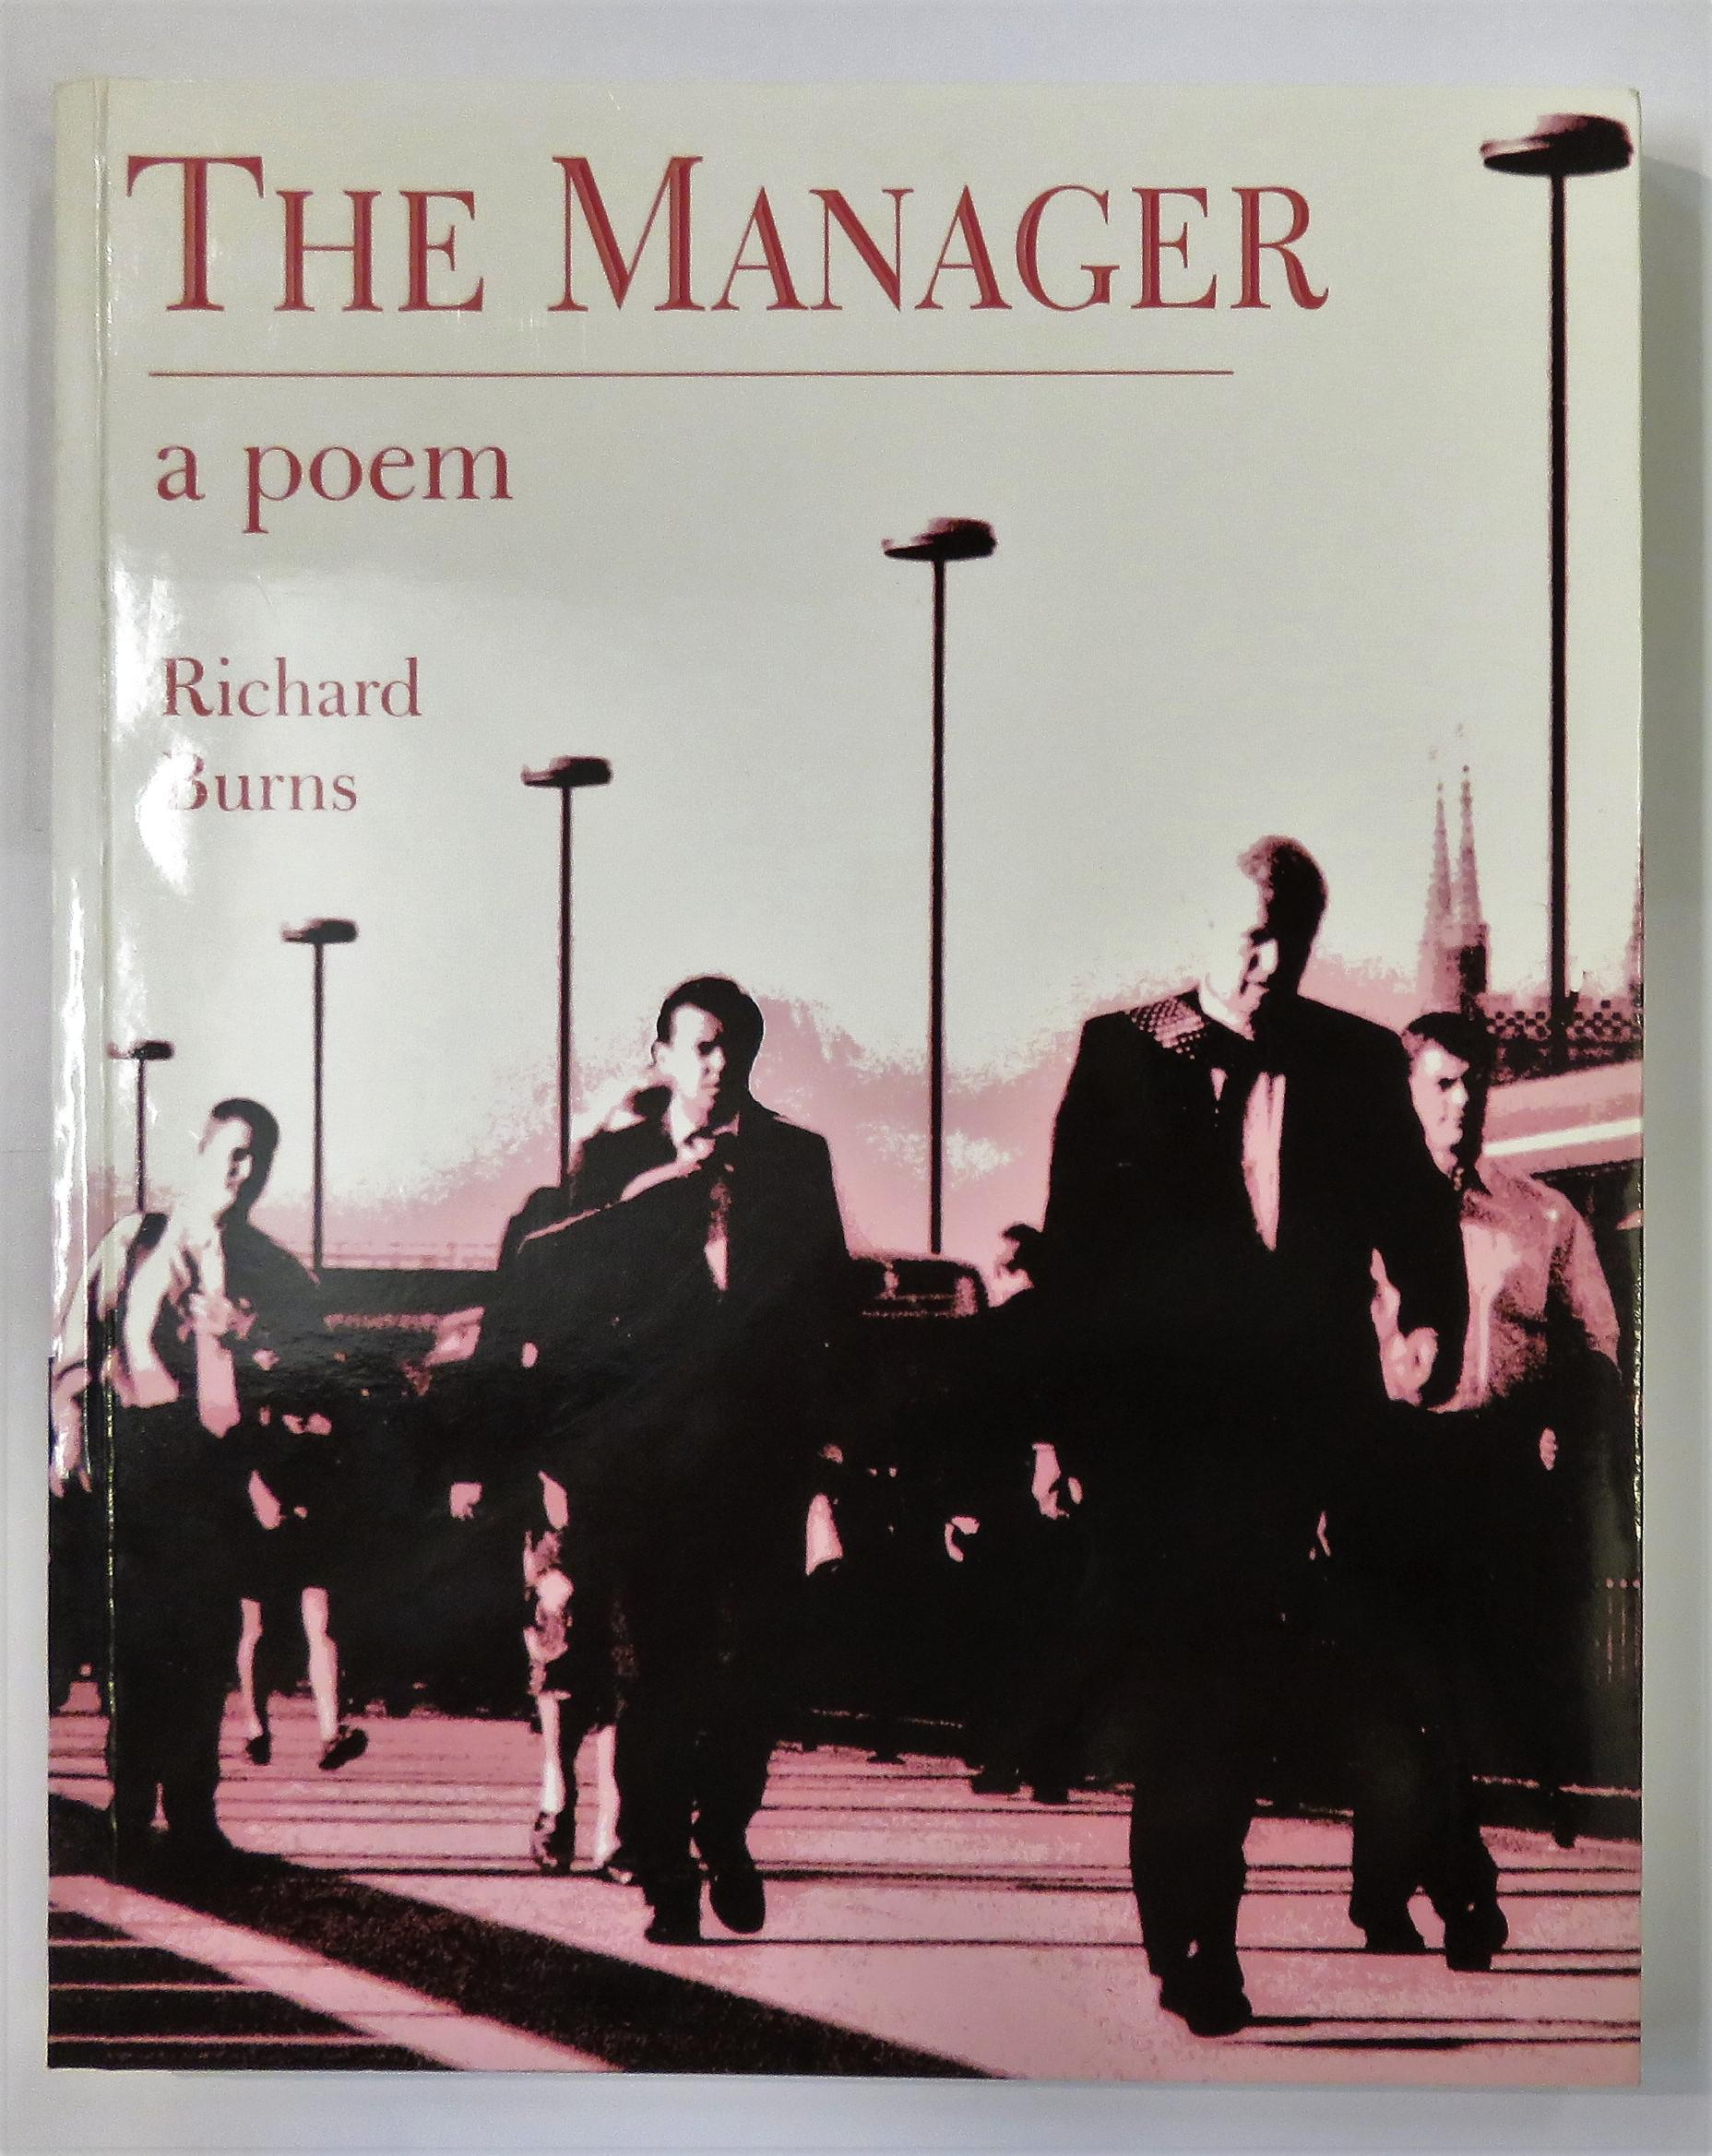 The Manager a poem